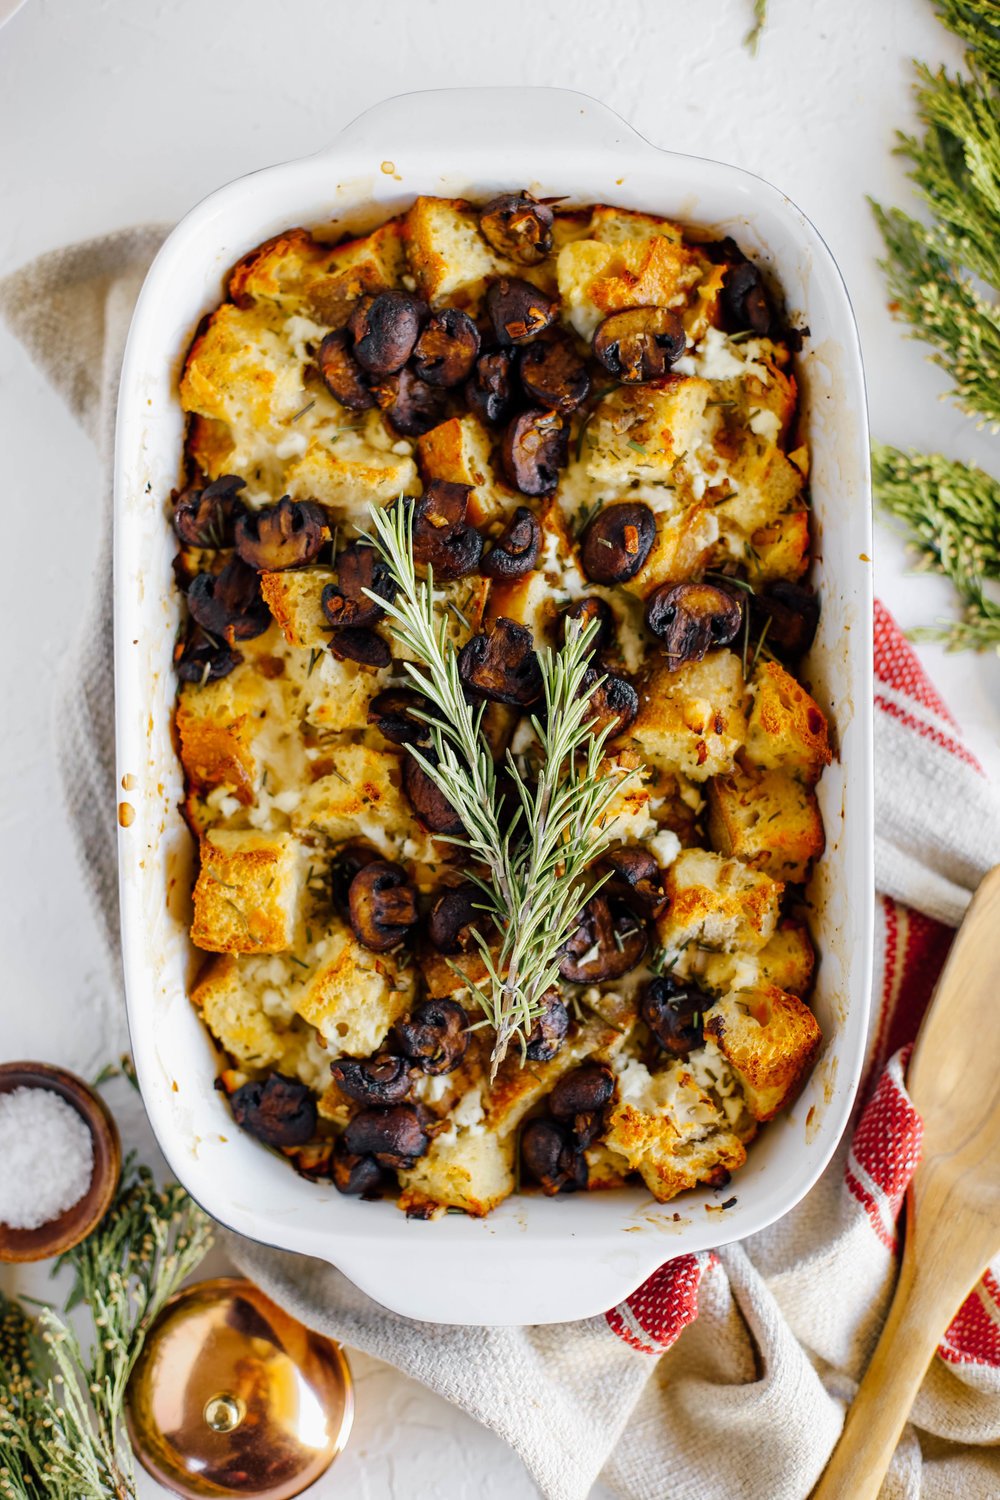 Brown Butter Mushroom and Goat Cheese Strata-12.jpg